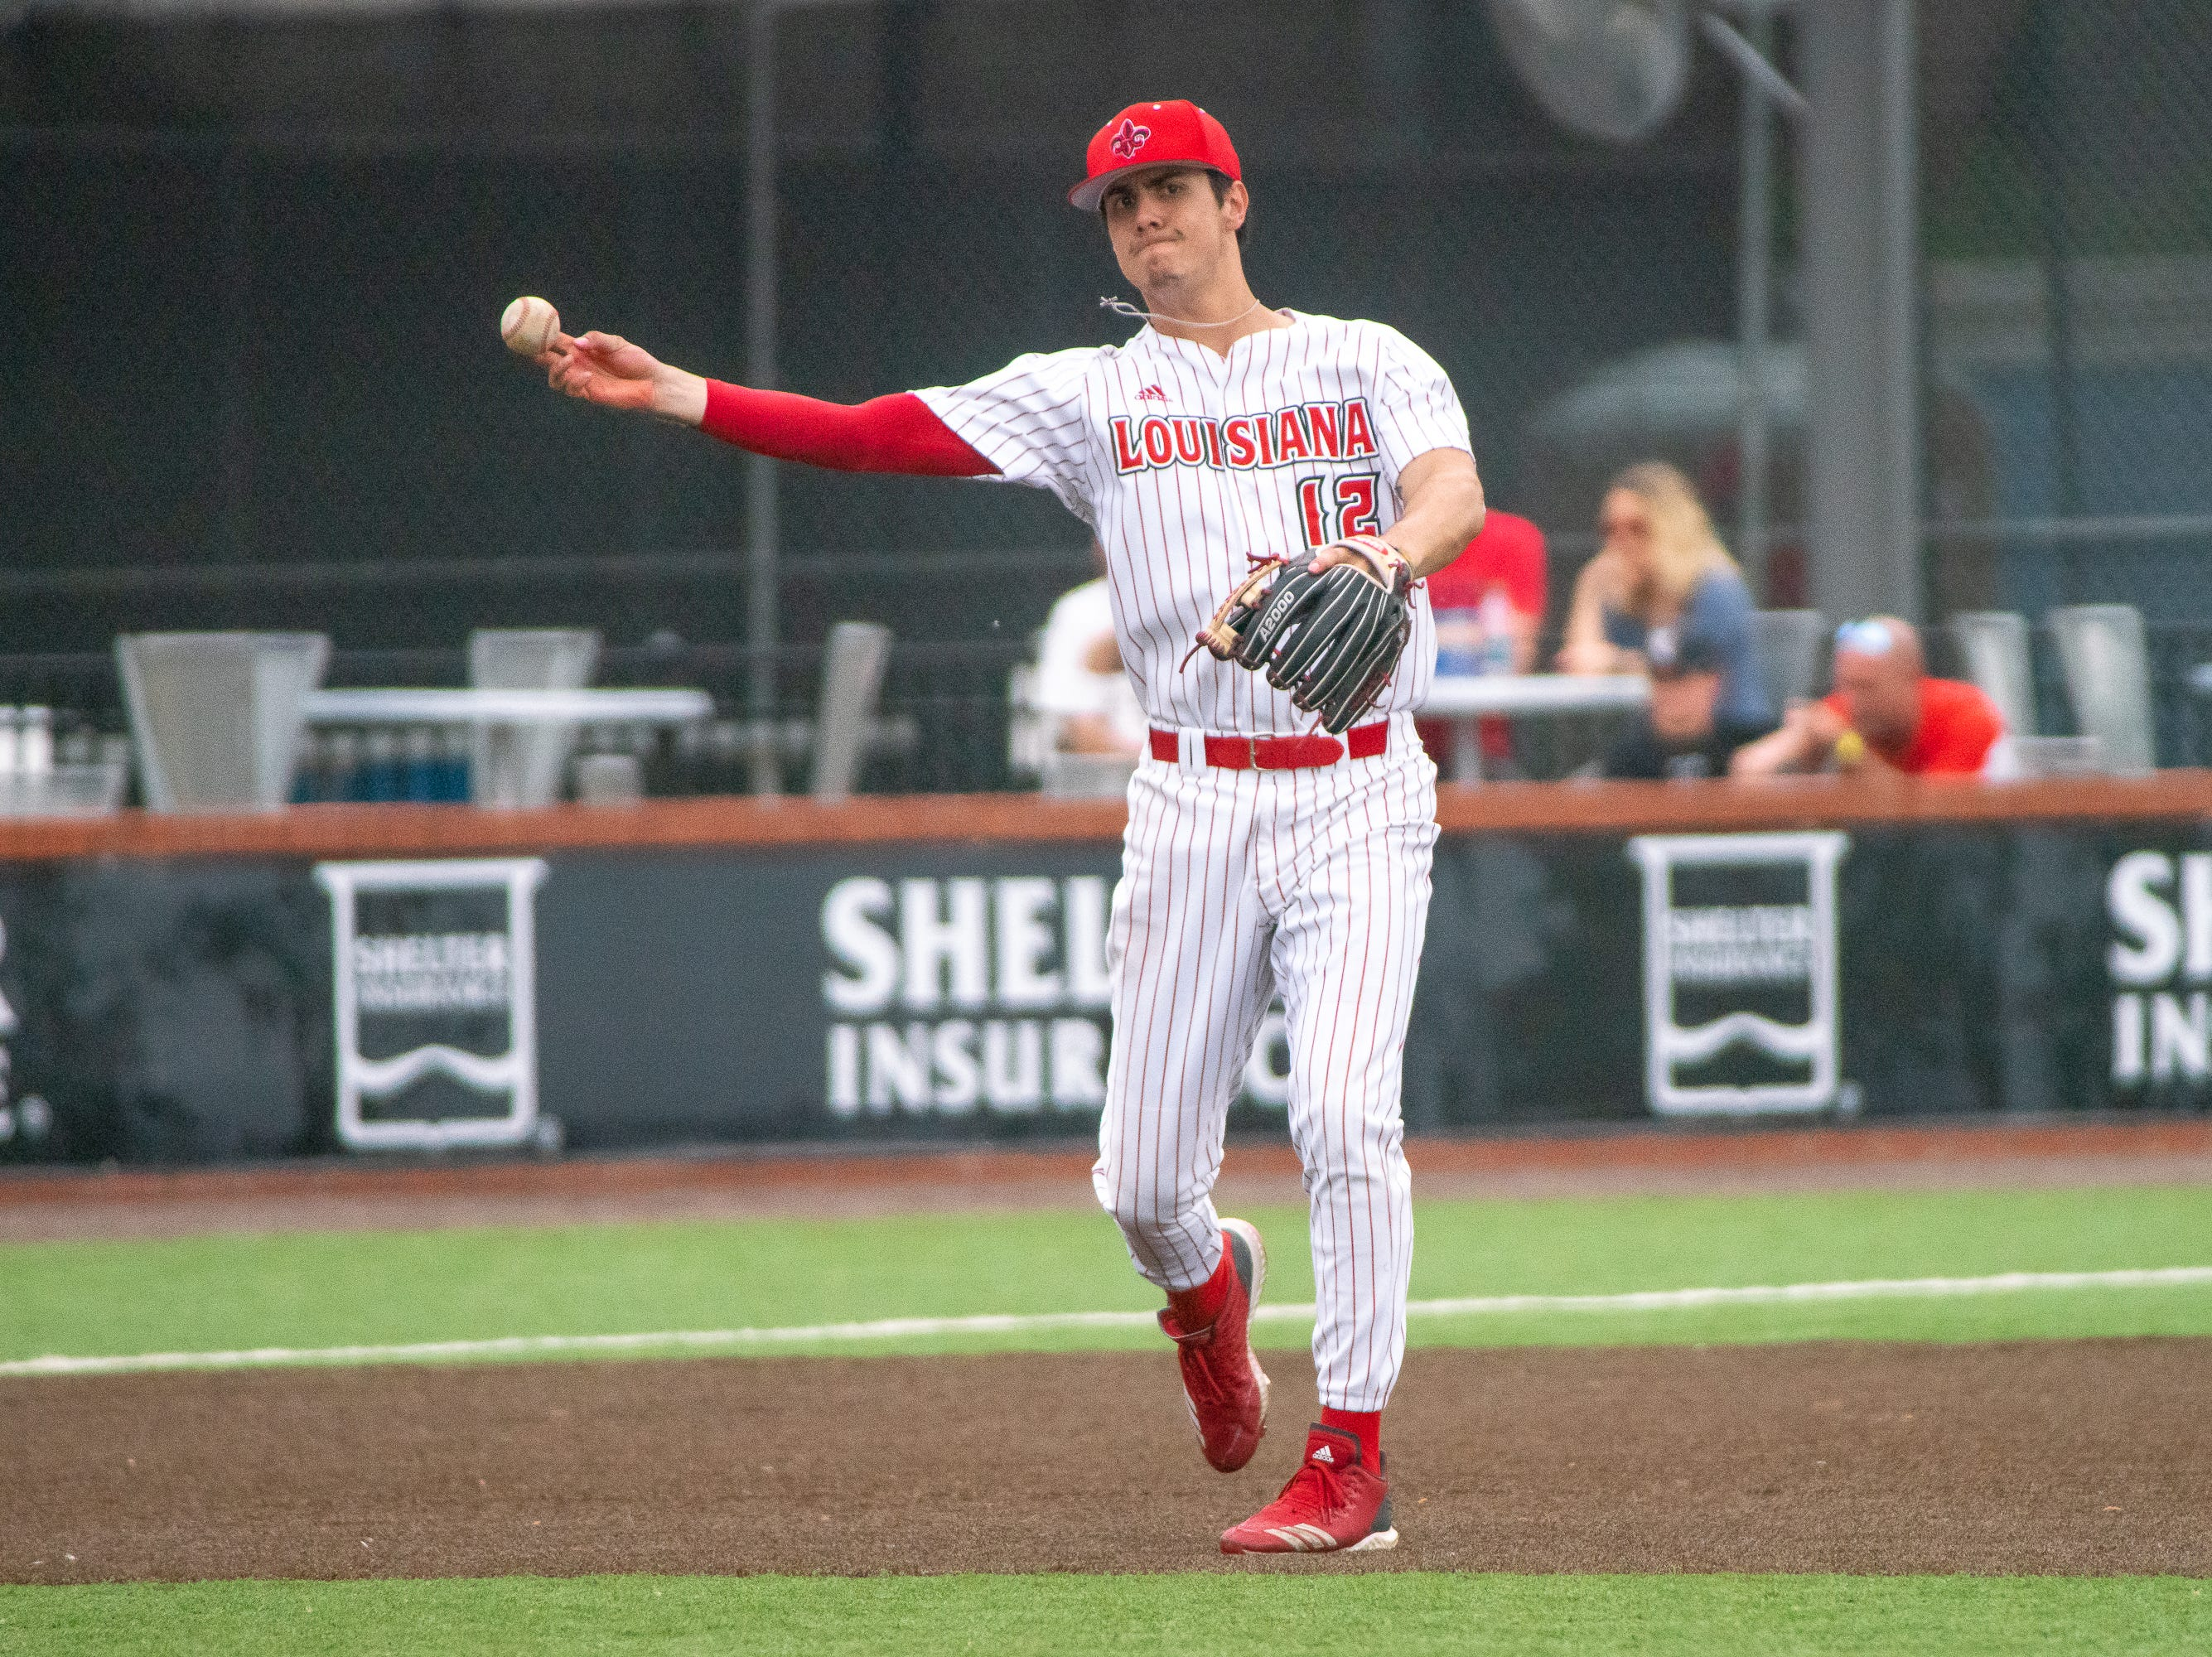 UL's Jonathan Windham practices on the field in between innings as the Ragin' Cajuns take on the Loyola Marymount Lions at M.L. Tigue Moore Field on March 10, 2019.